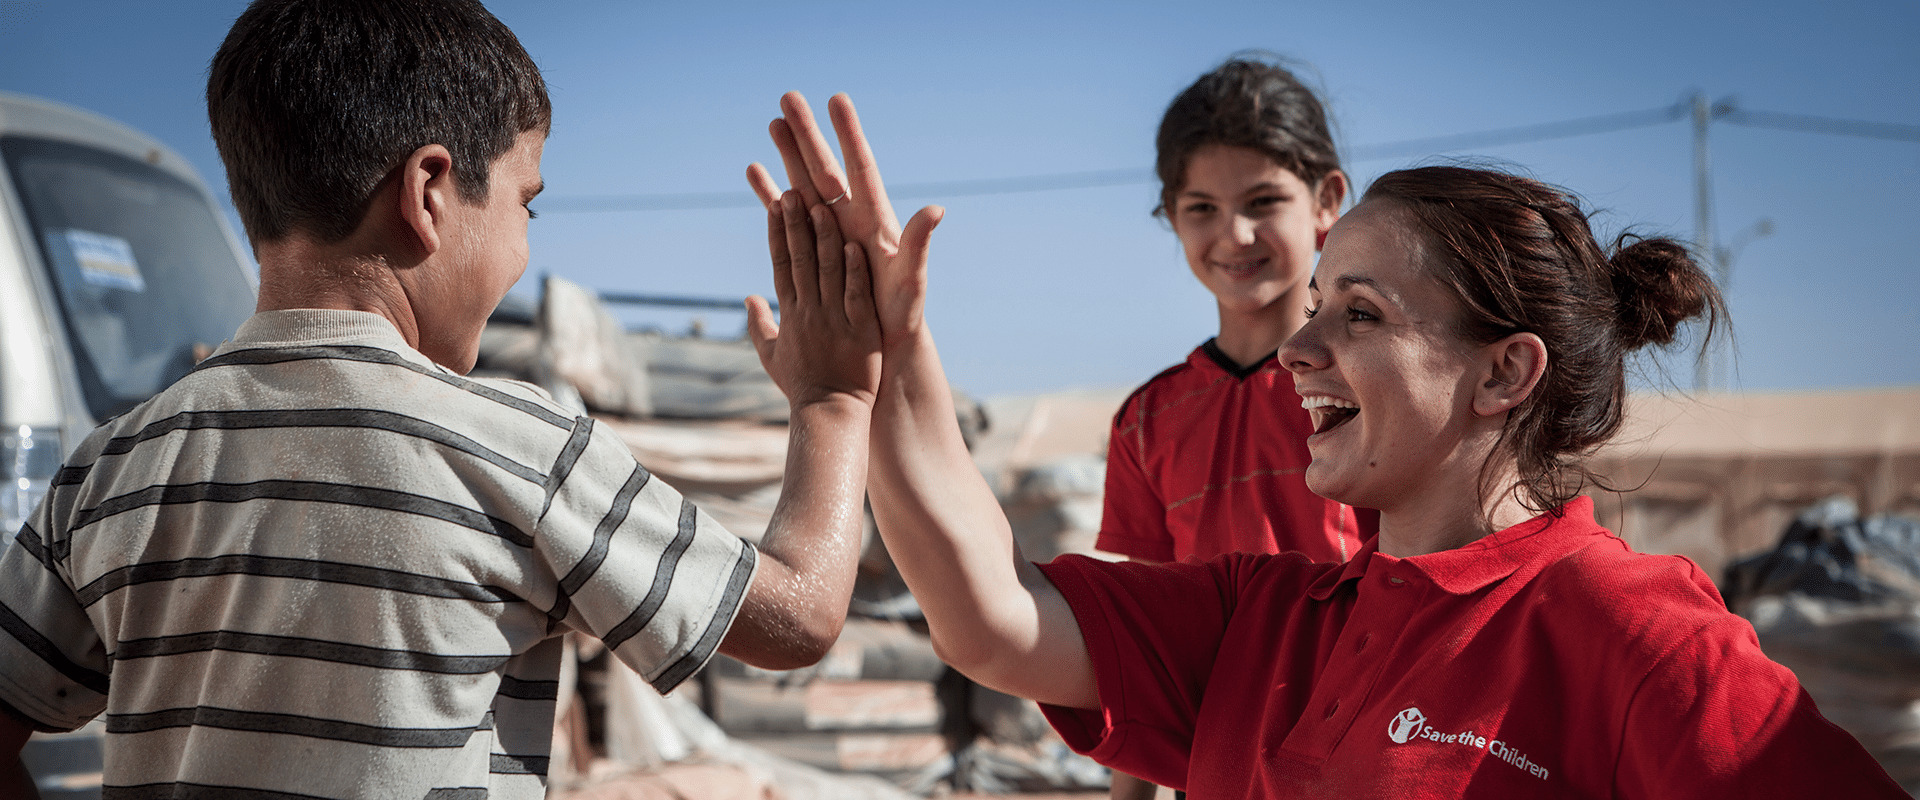 Image of a Save the Children-employee hig-fiving a young boy.